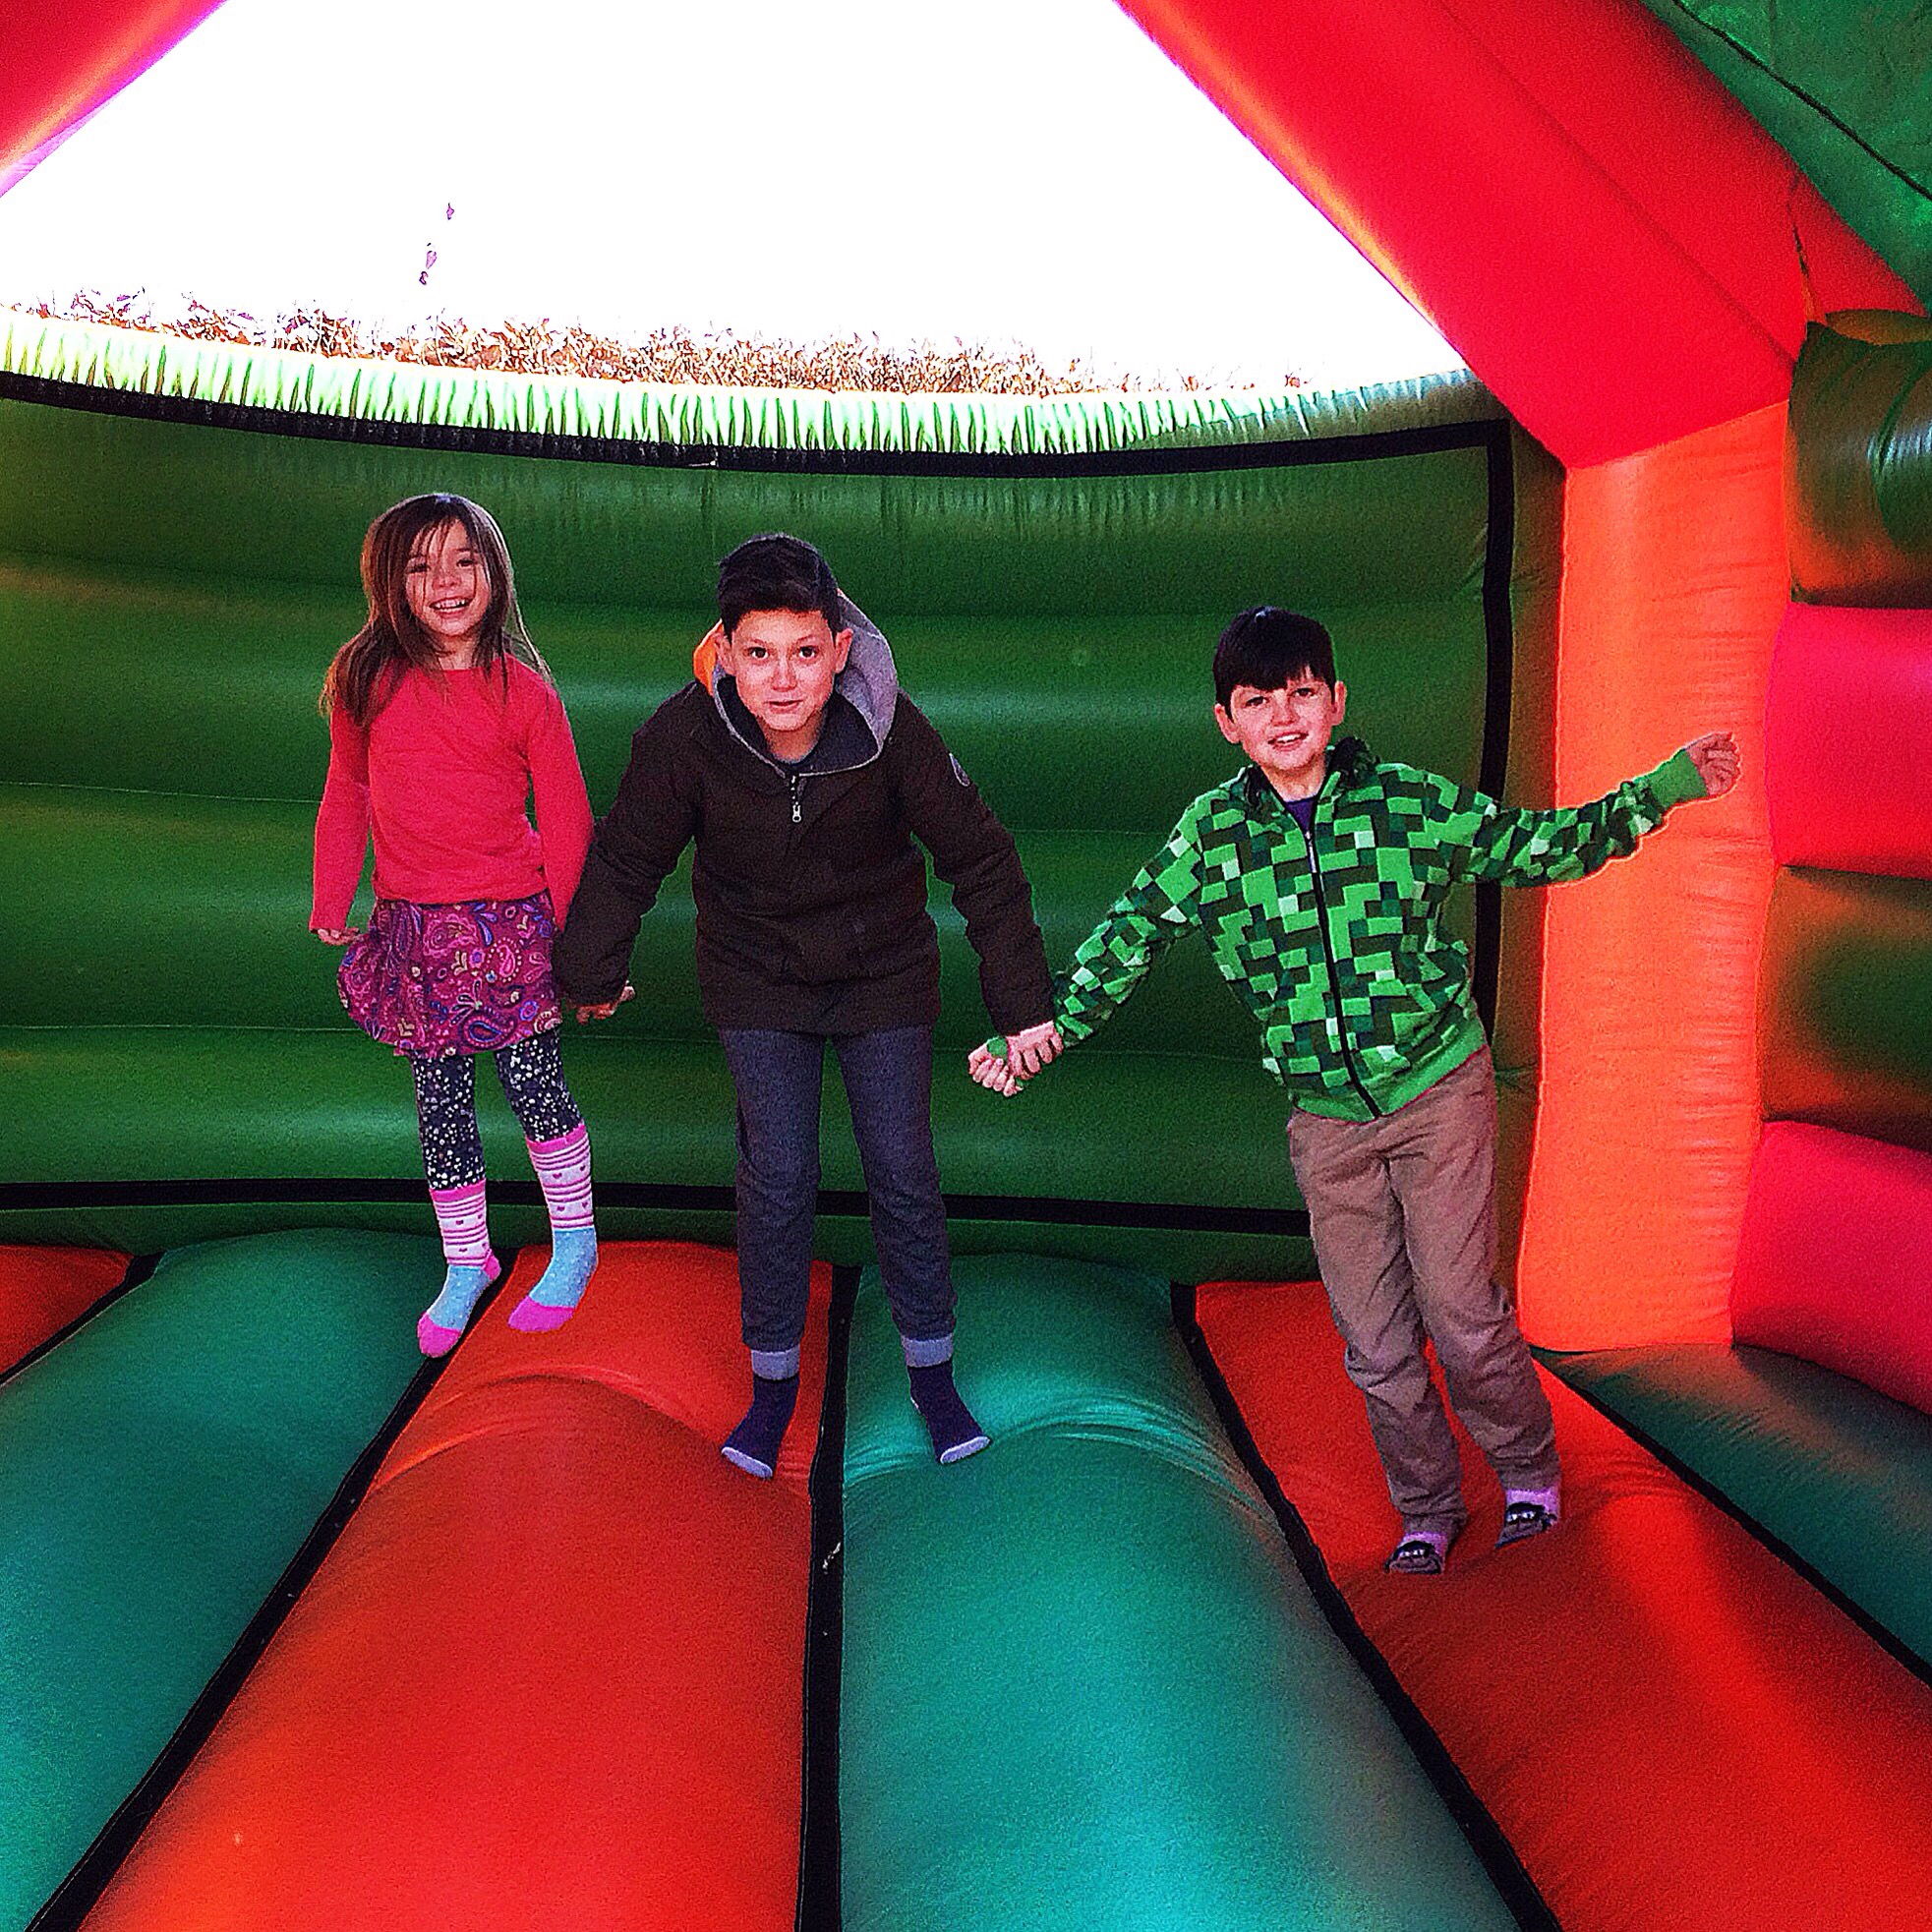 Bouncy castle, family, jumping, happy, Kent, Groombridge